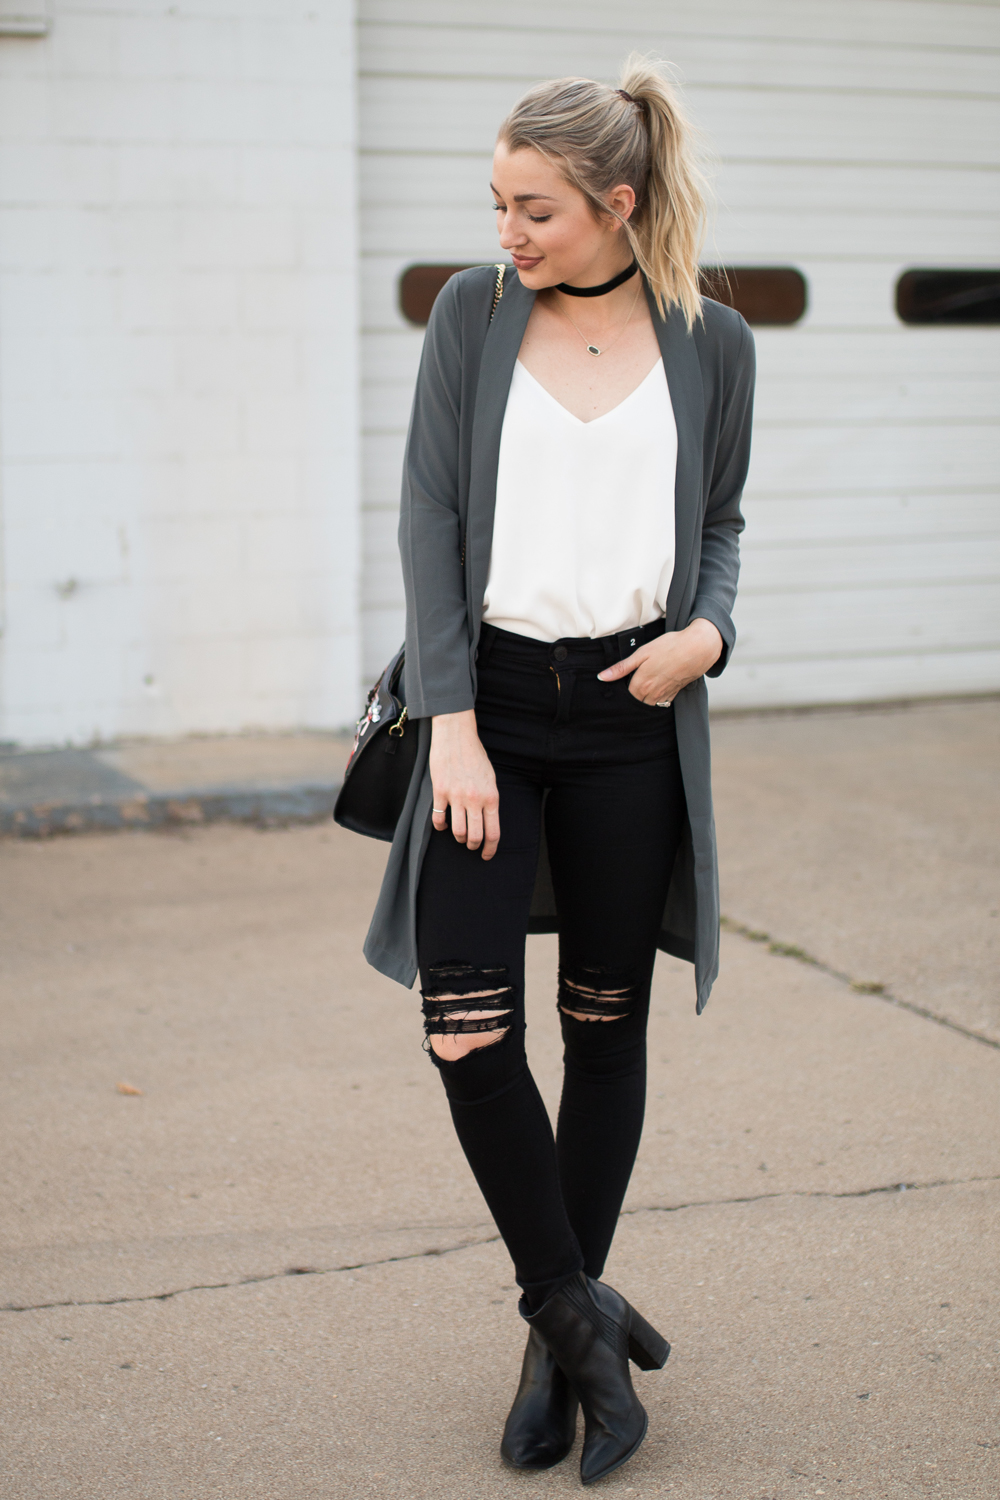 How to style a long blazer